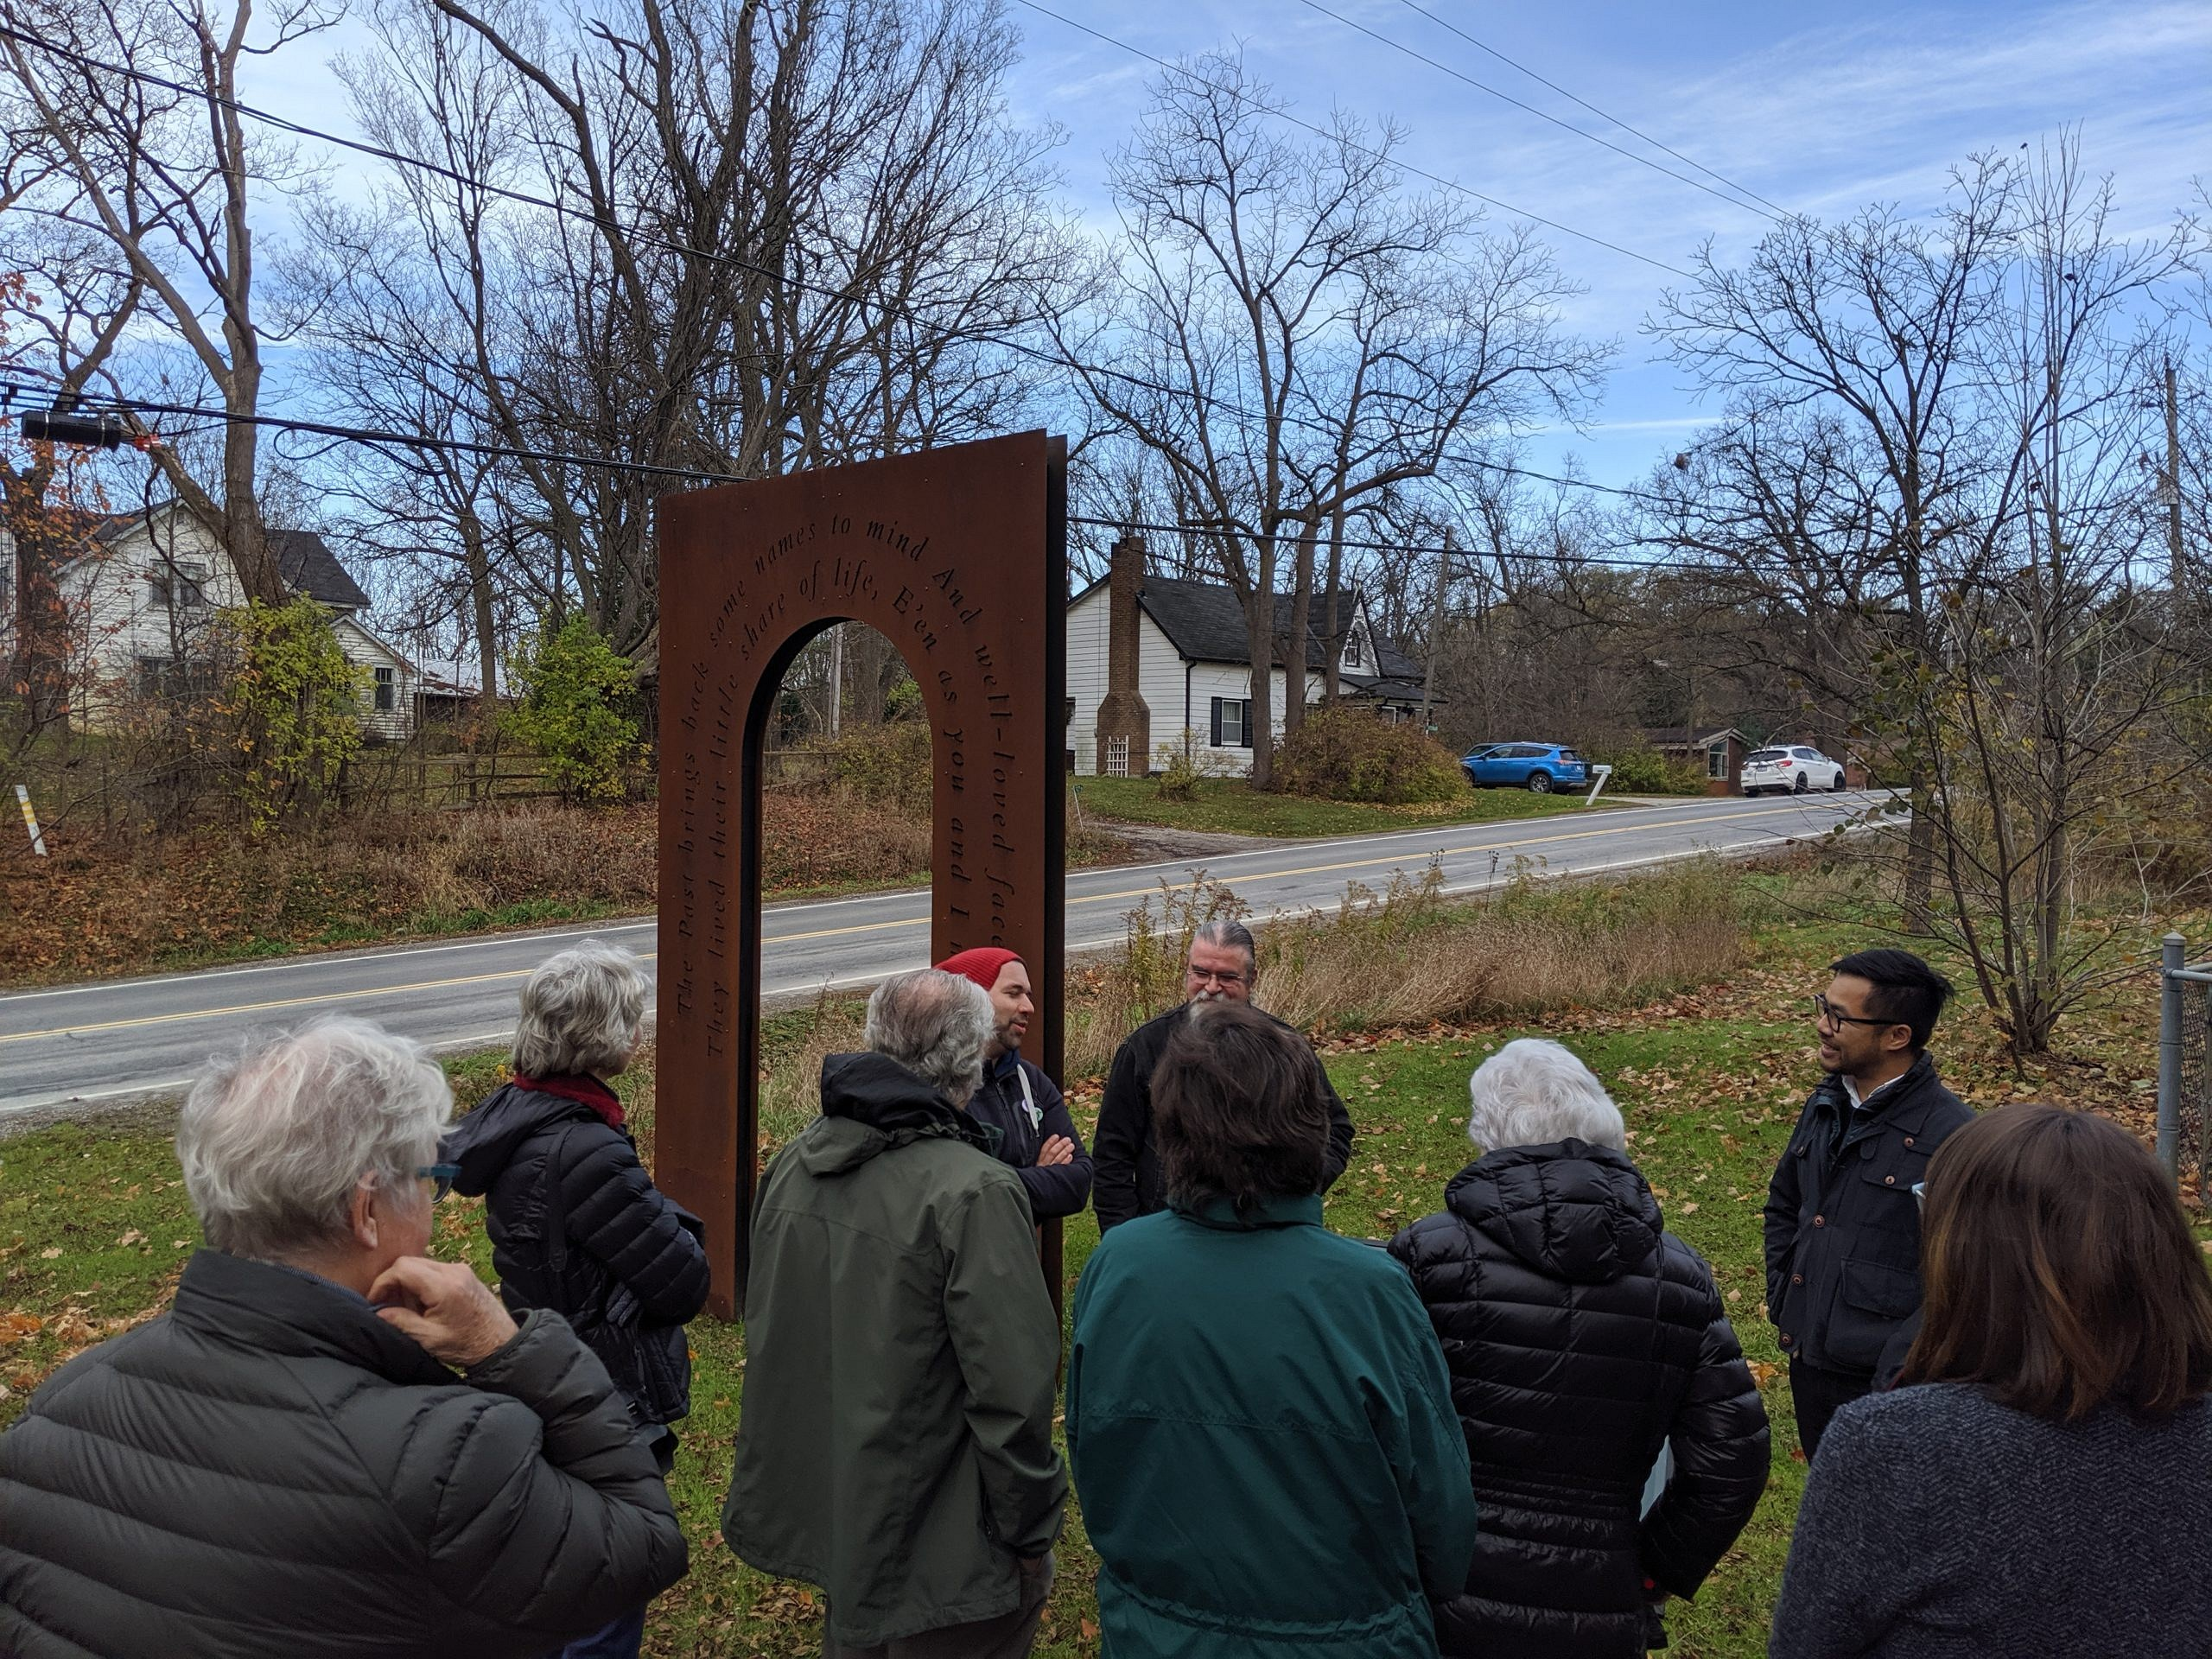 Residents and Small artists gather at the opening of Laskay's Gate